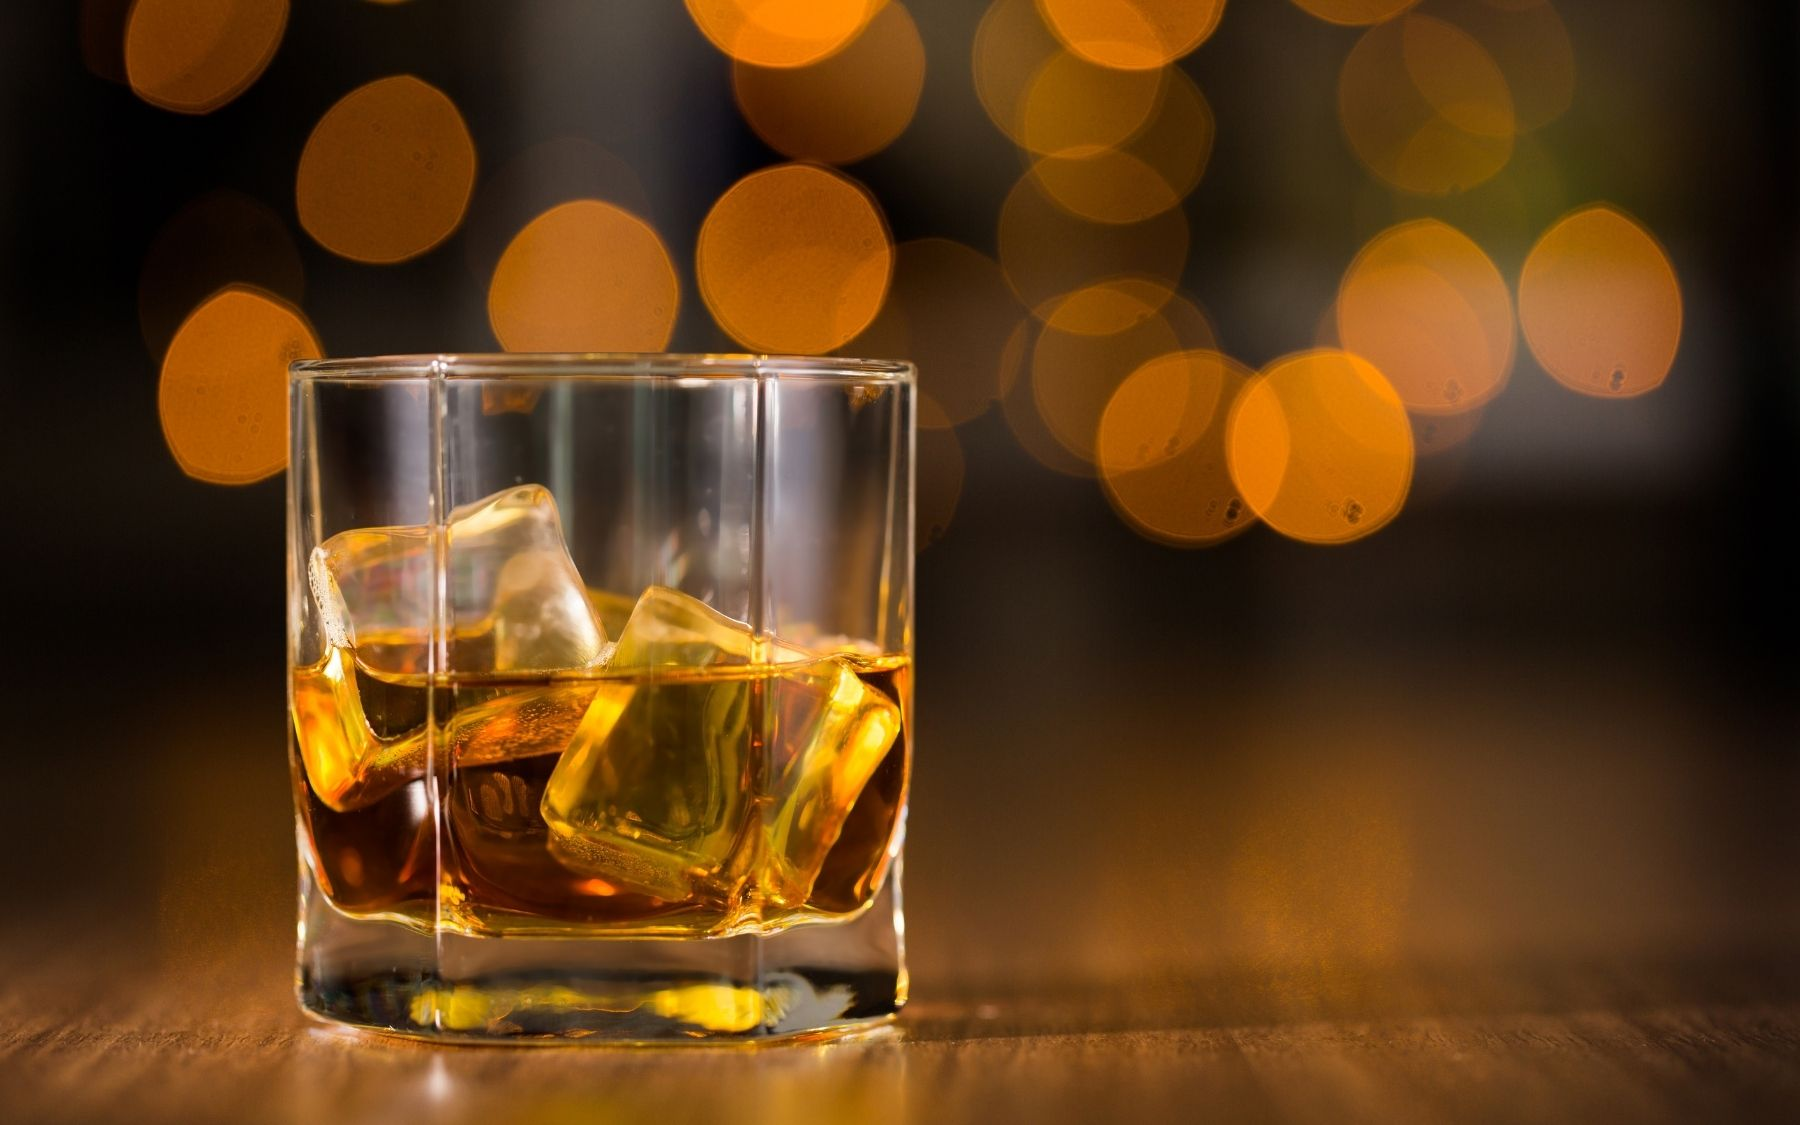 Over active bladder and your drinking pattern